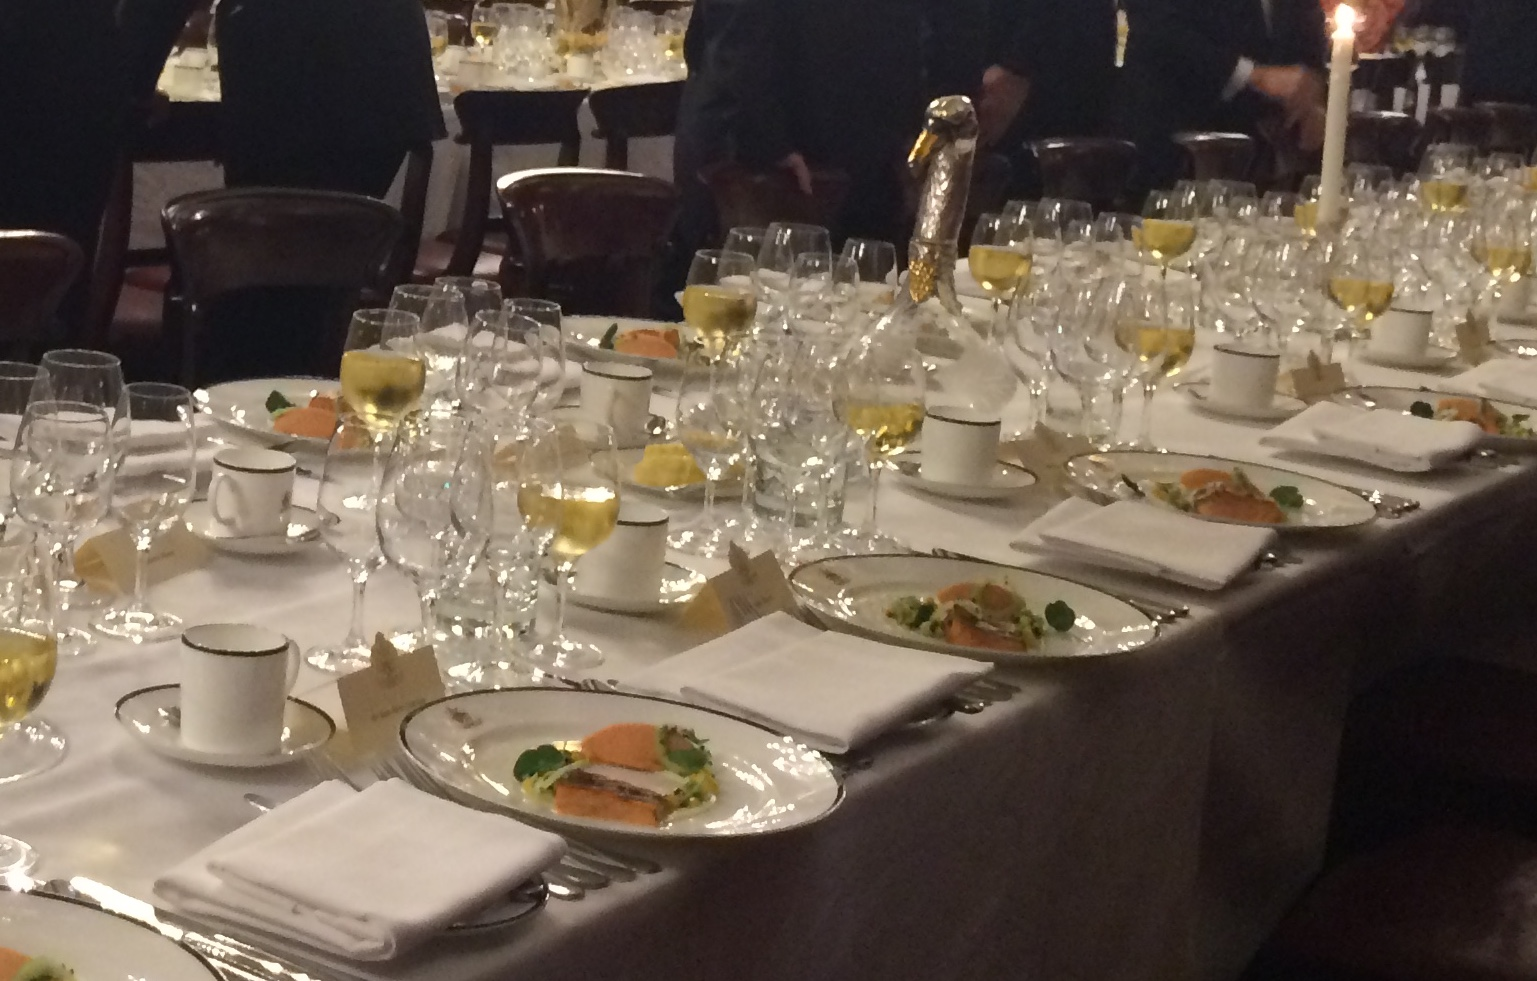 The table set at the beginning of the evening